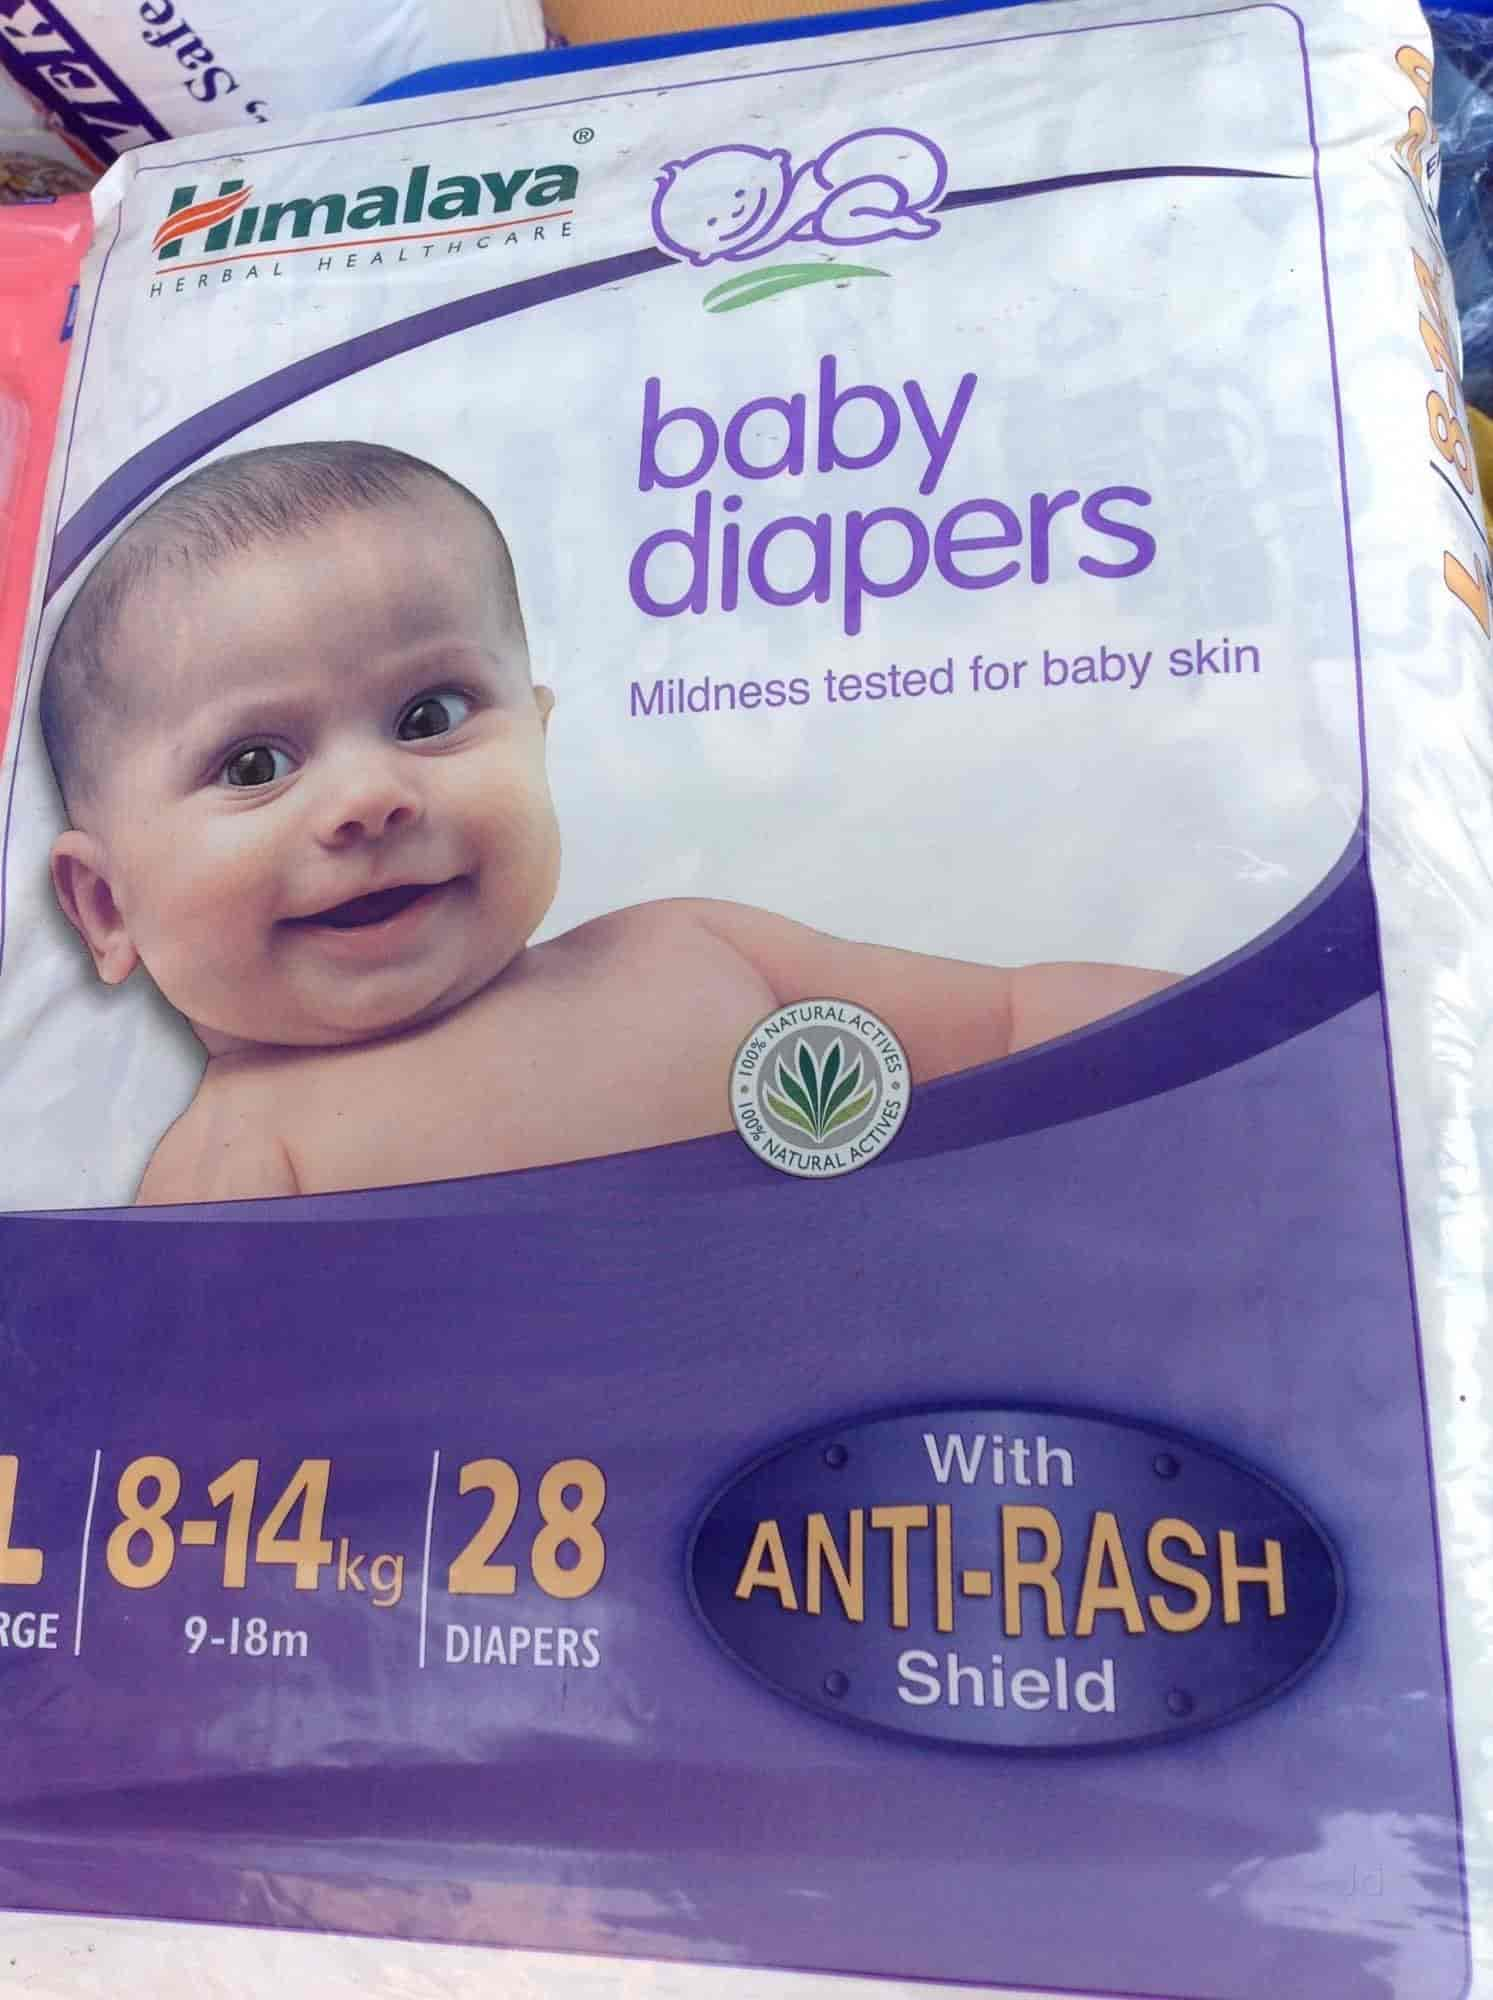 With you Adult diaper service